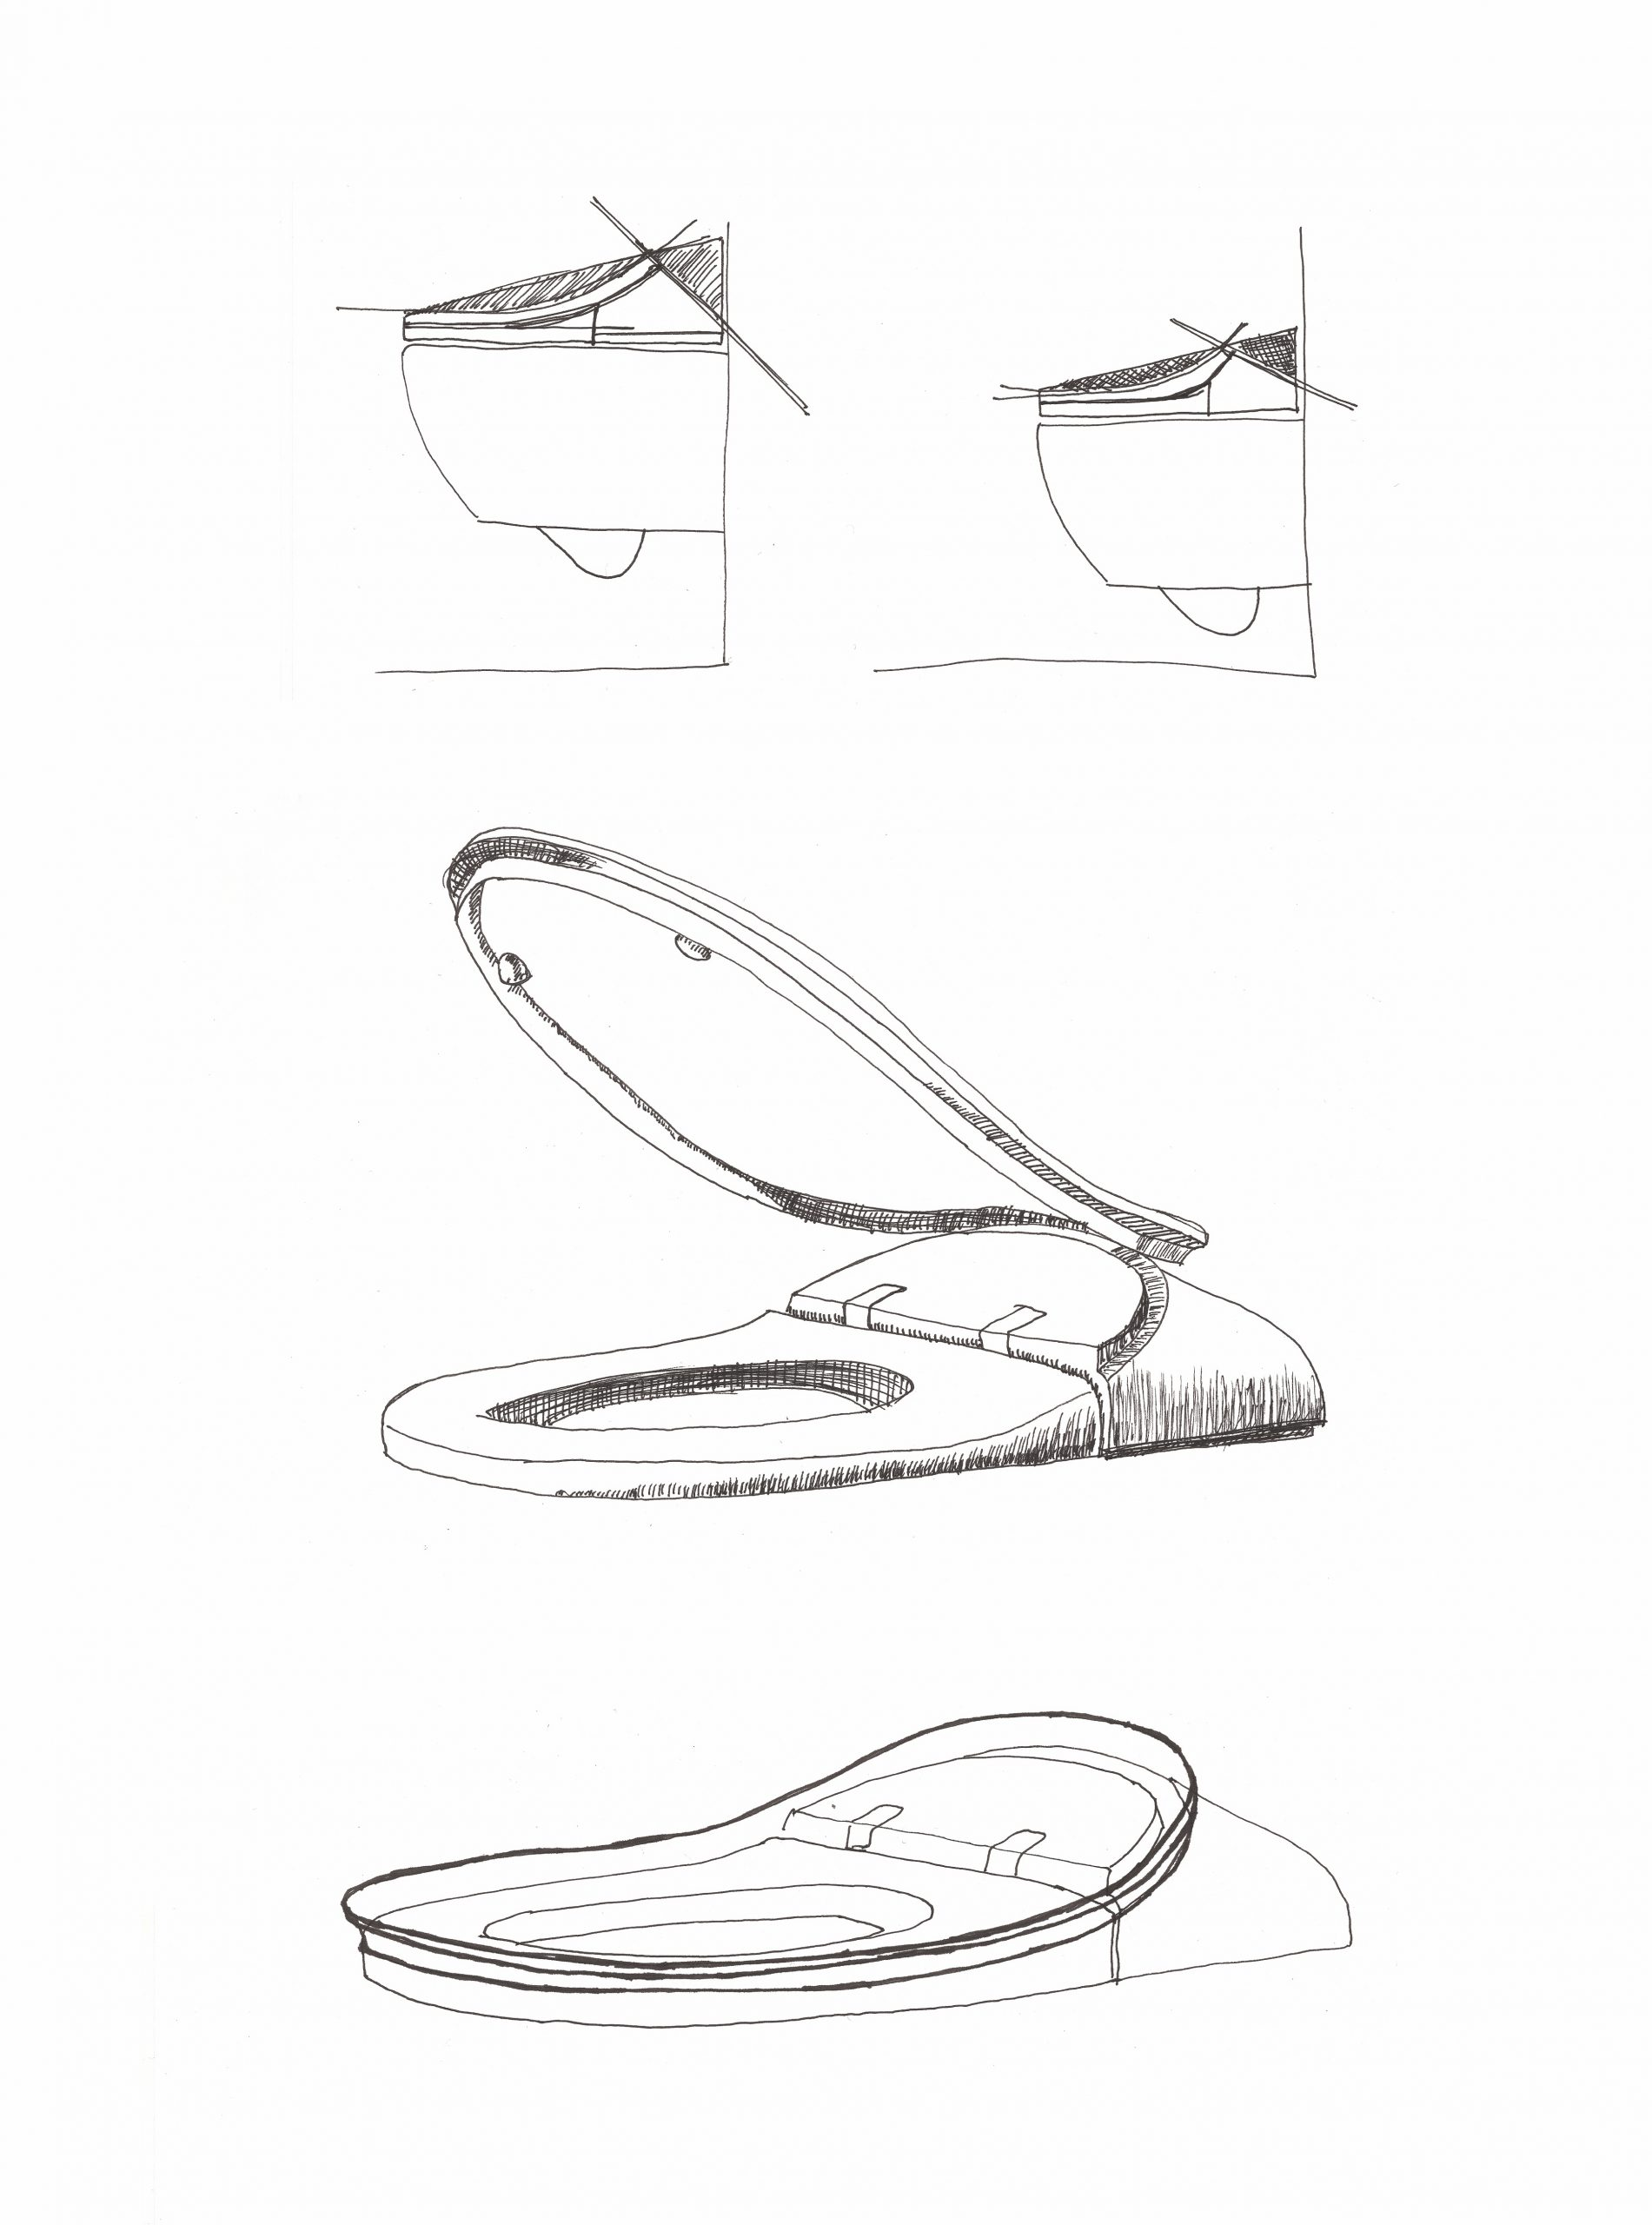 Sketch of ViClean electronic Bidet by Debiasi sandri for Villeroy and Boch